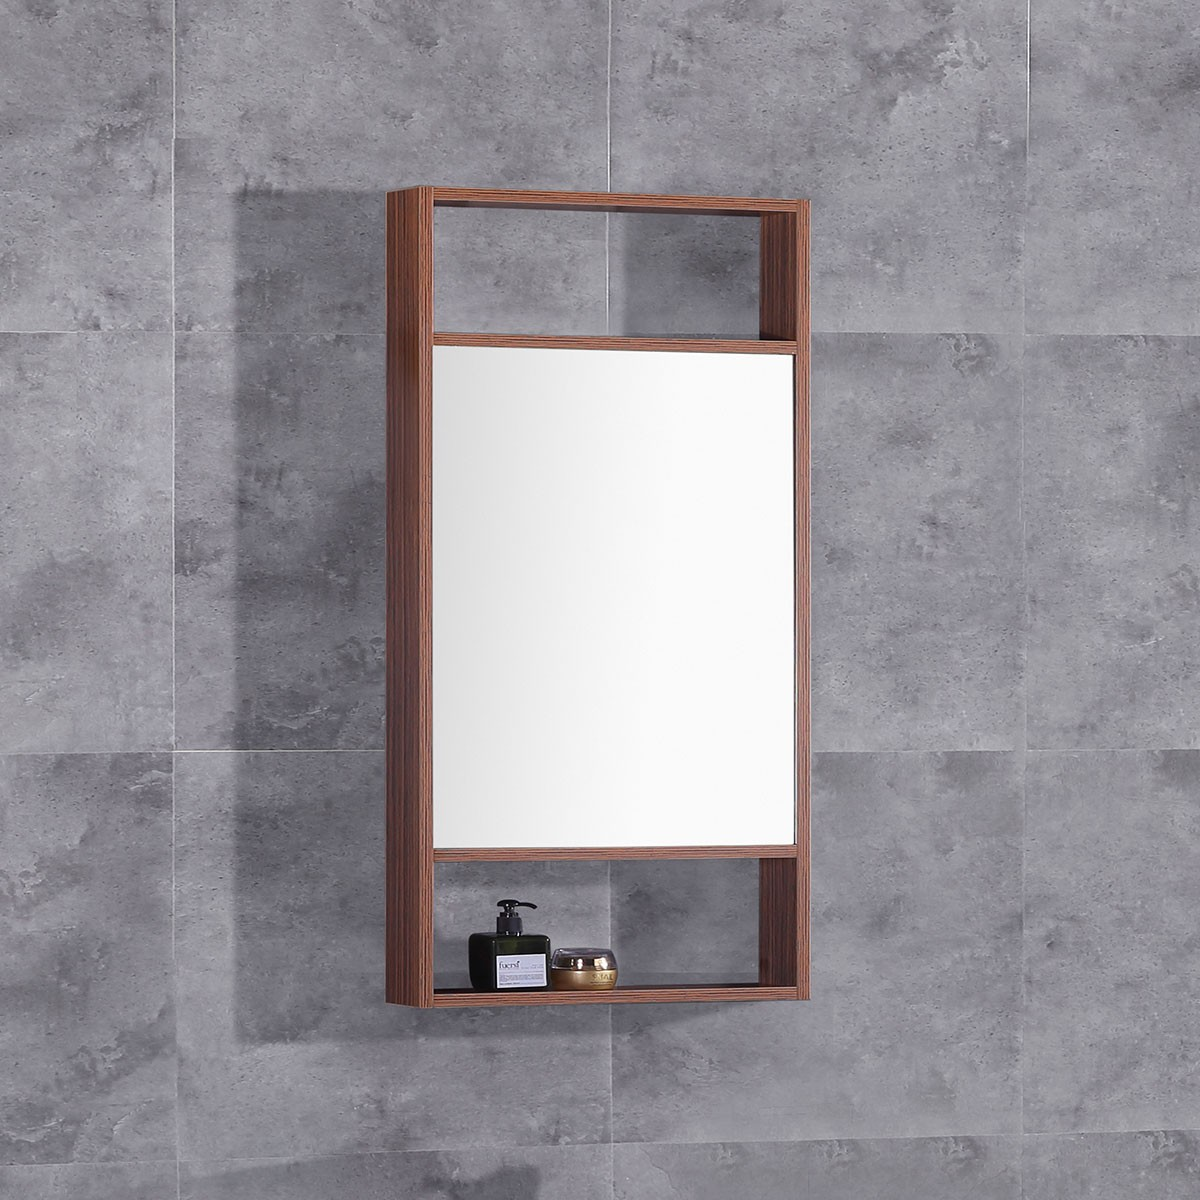 20 x 28 In. Mirror with  Frame (DK-TH21302B-M)